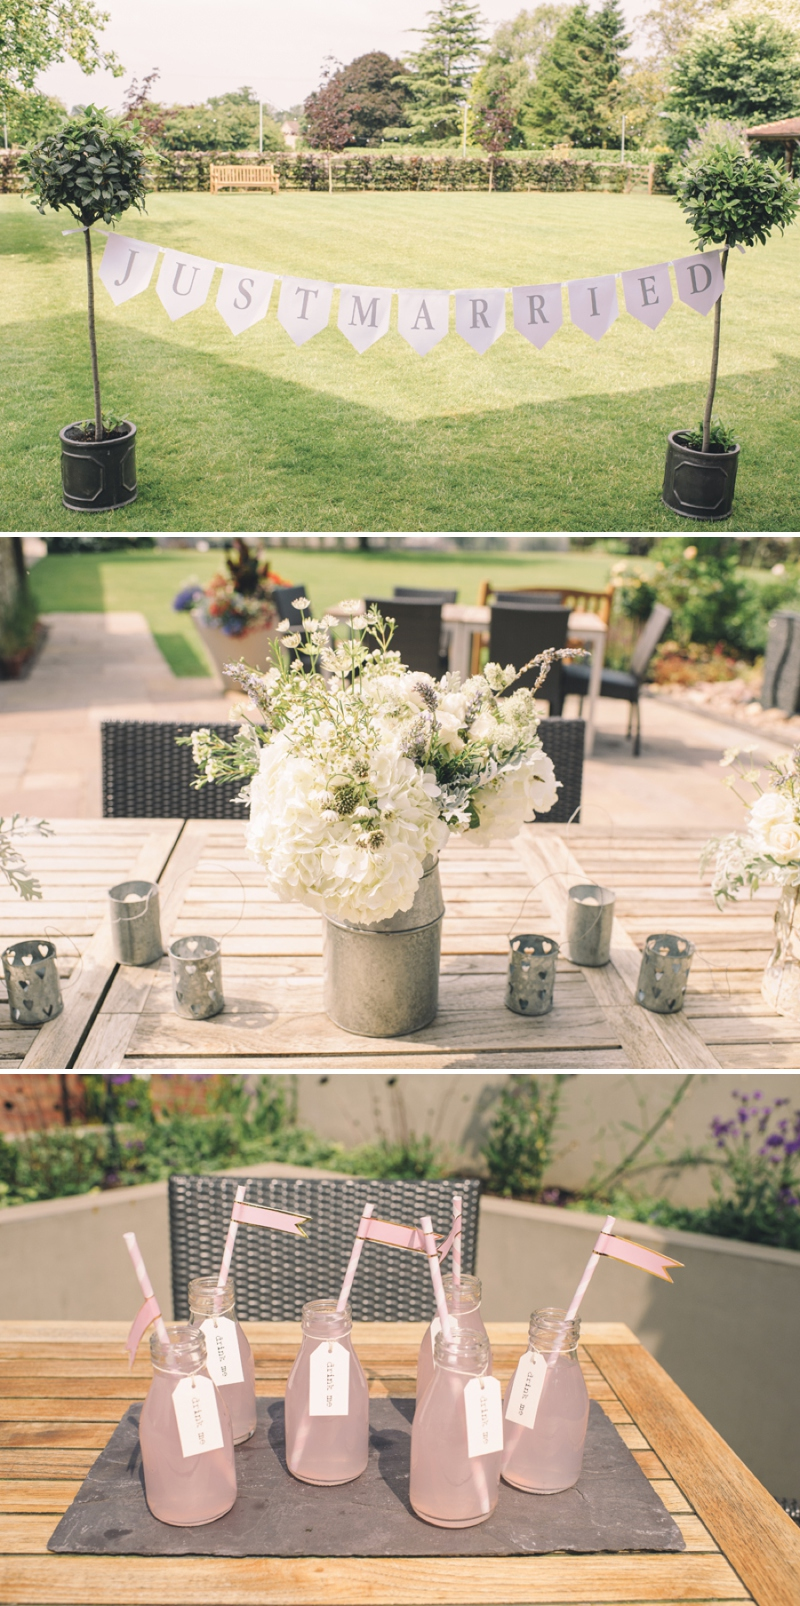 The wedding of my dreams rustic and vintage wedding for Decoration retro